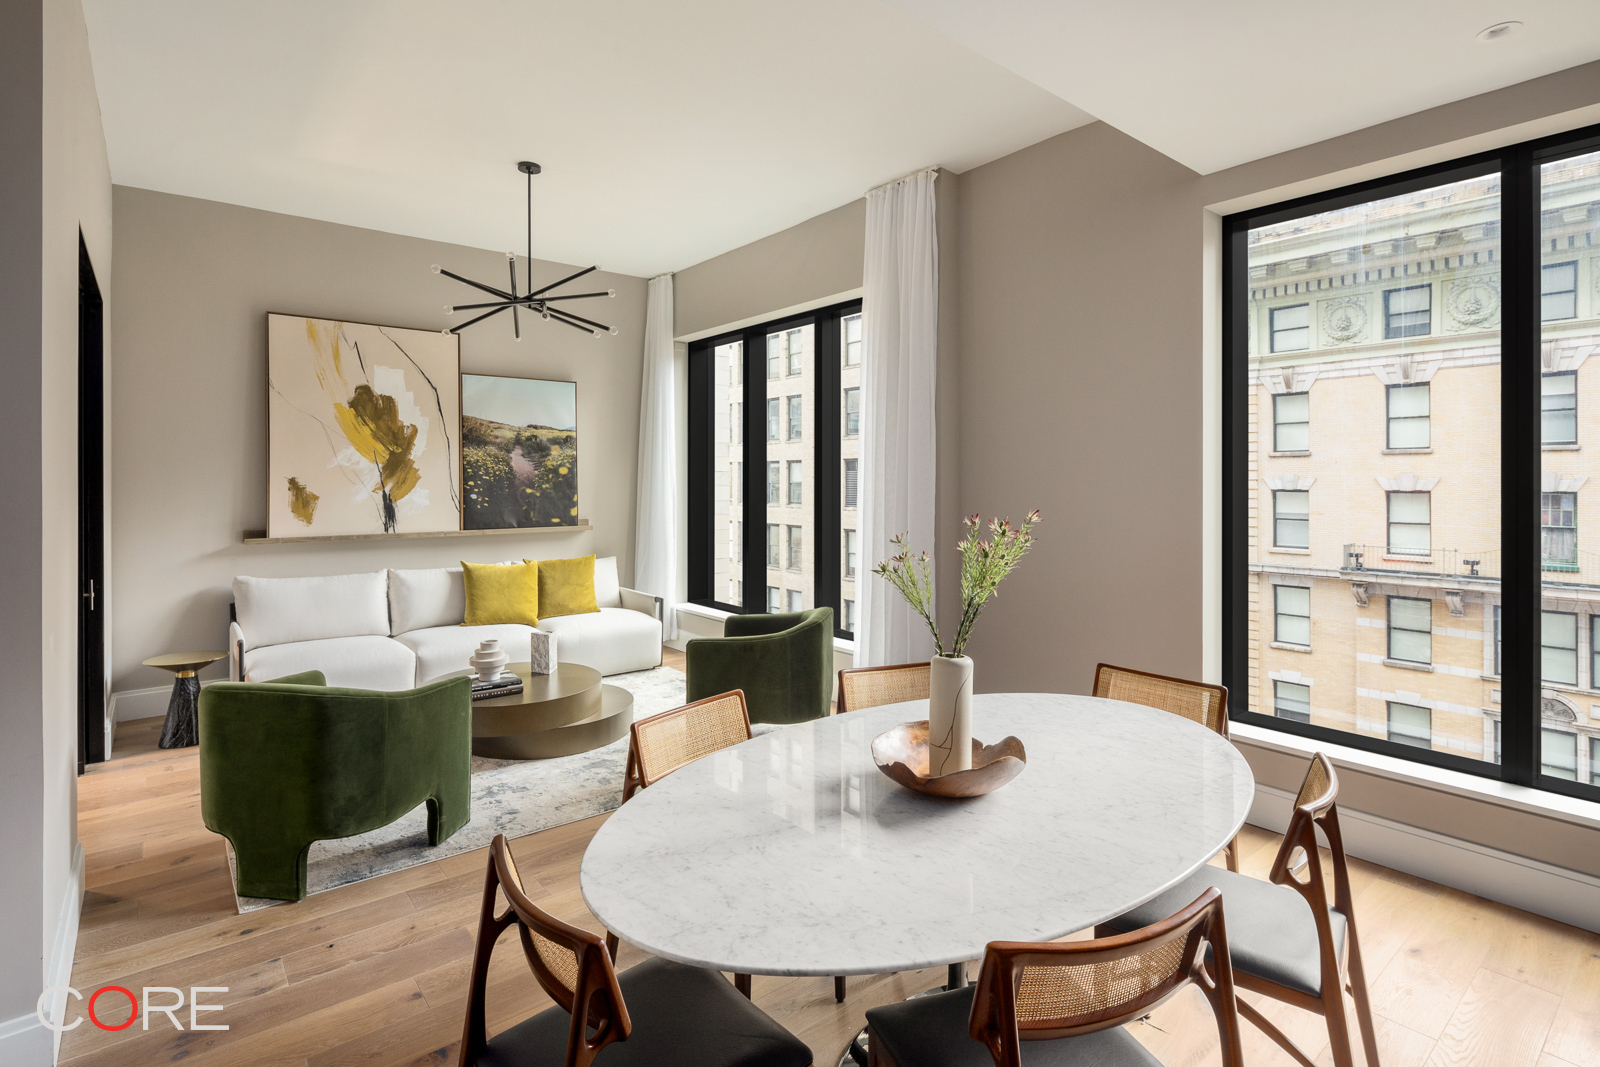 primary photo for 30 East 29th Street 5A, New York, NY 10016, US